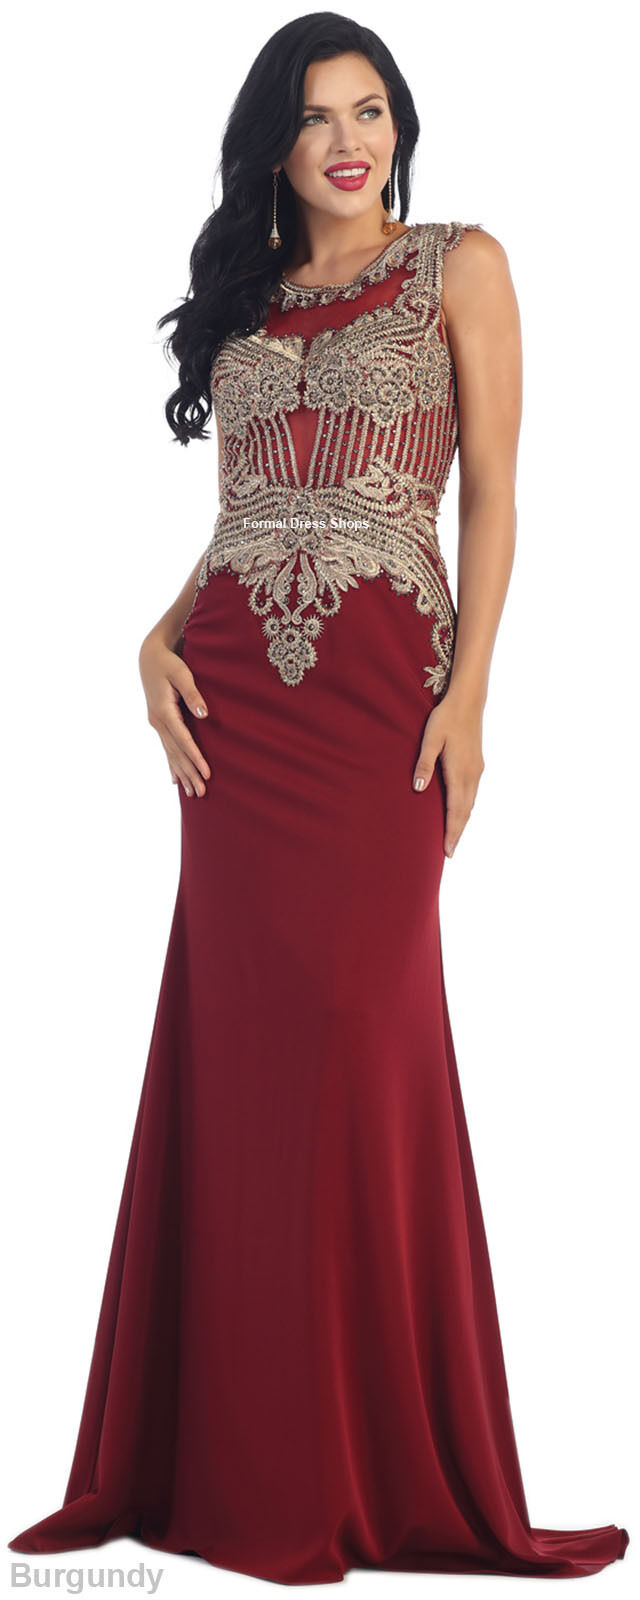 SALE   PAGEANT FORMAL EVENING PROM DRESSES SPECIAL OCCASION SLEEVELESS LONG GOWN